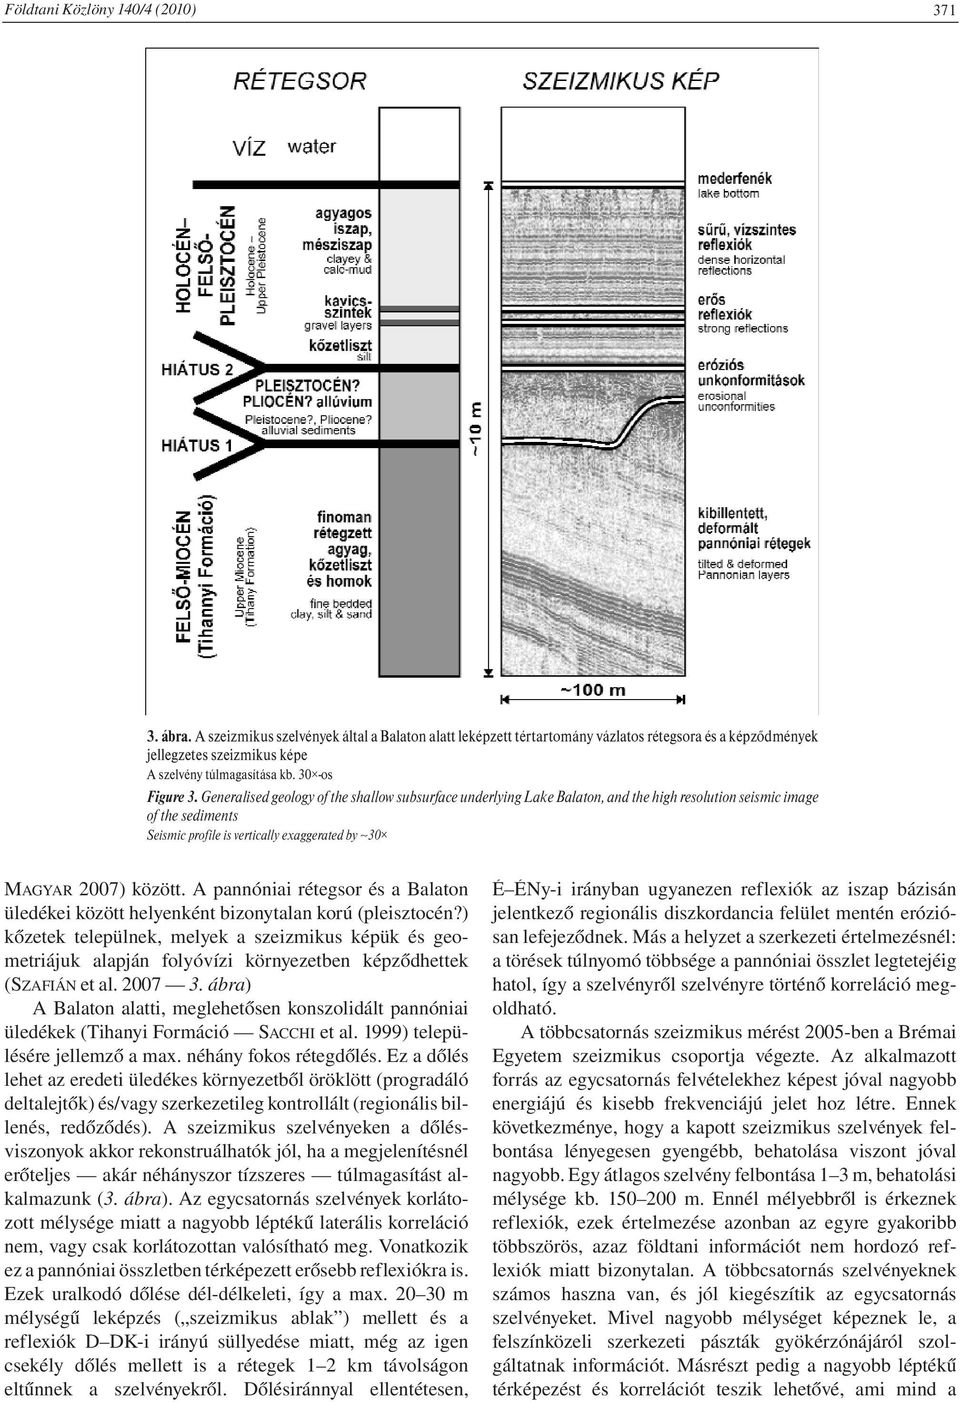 Generalised geology of the shallow subsurface underlying Lake Balaton, and the high resolution seismic image of the sediments Seismic profile is vertically exaggerated by 30 MAGYAR 2007) között.